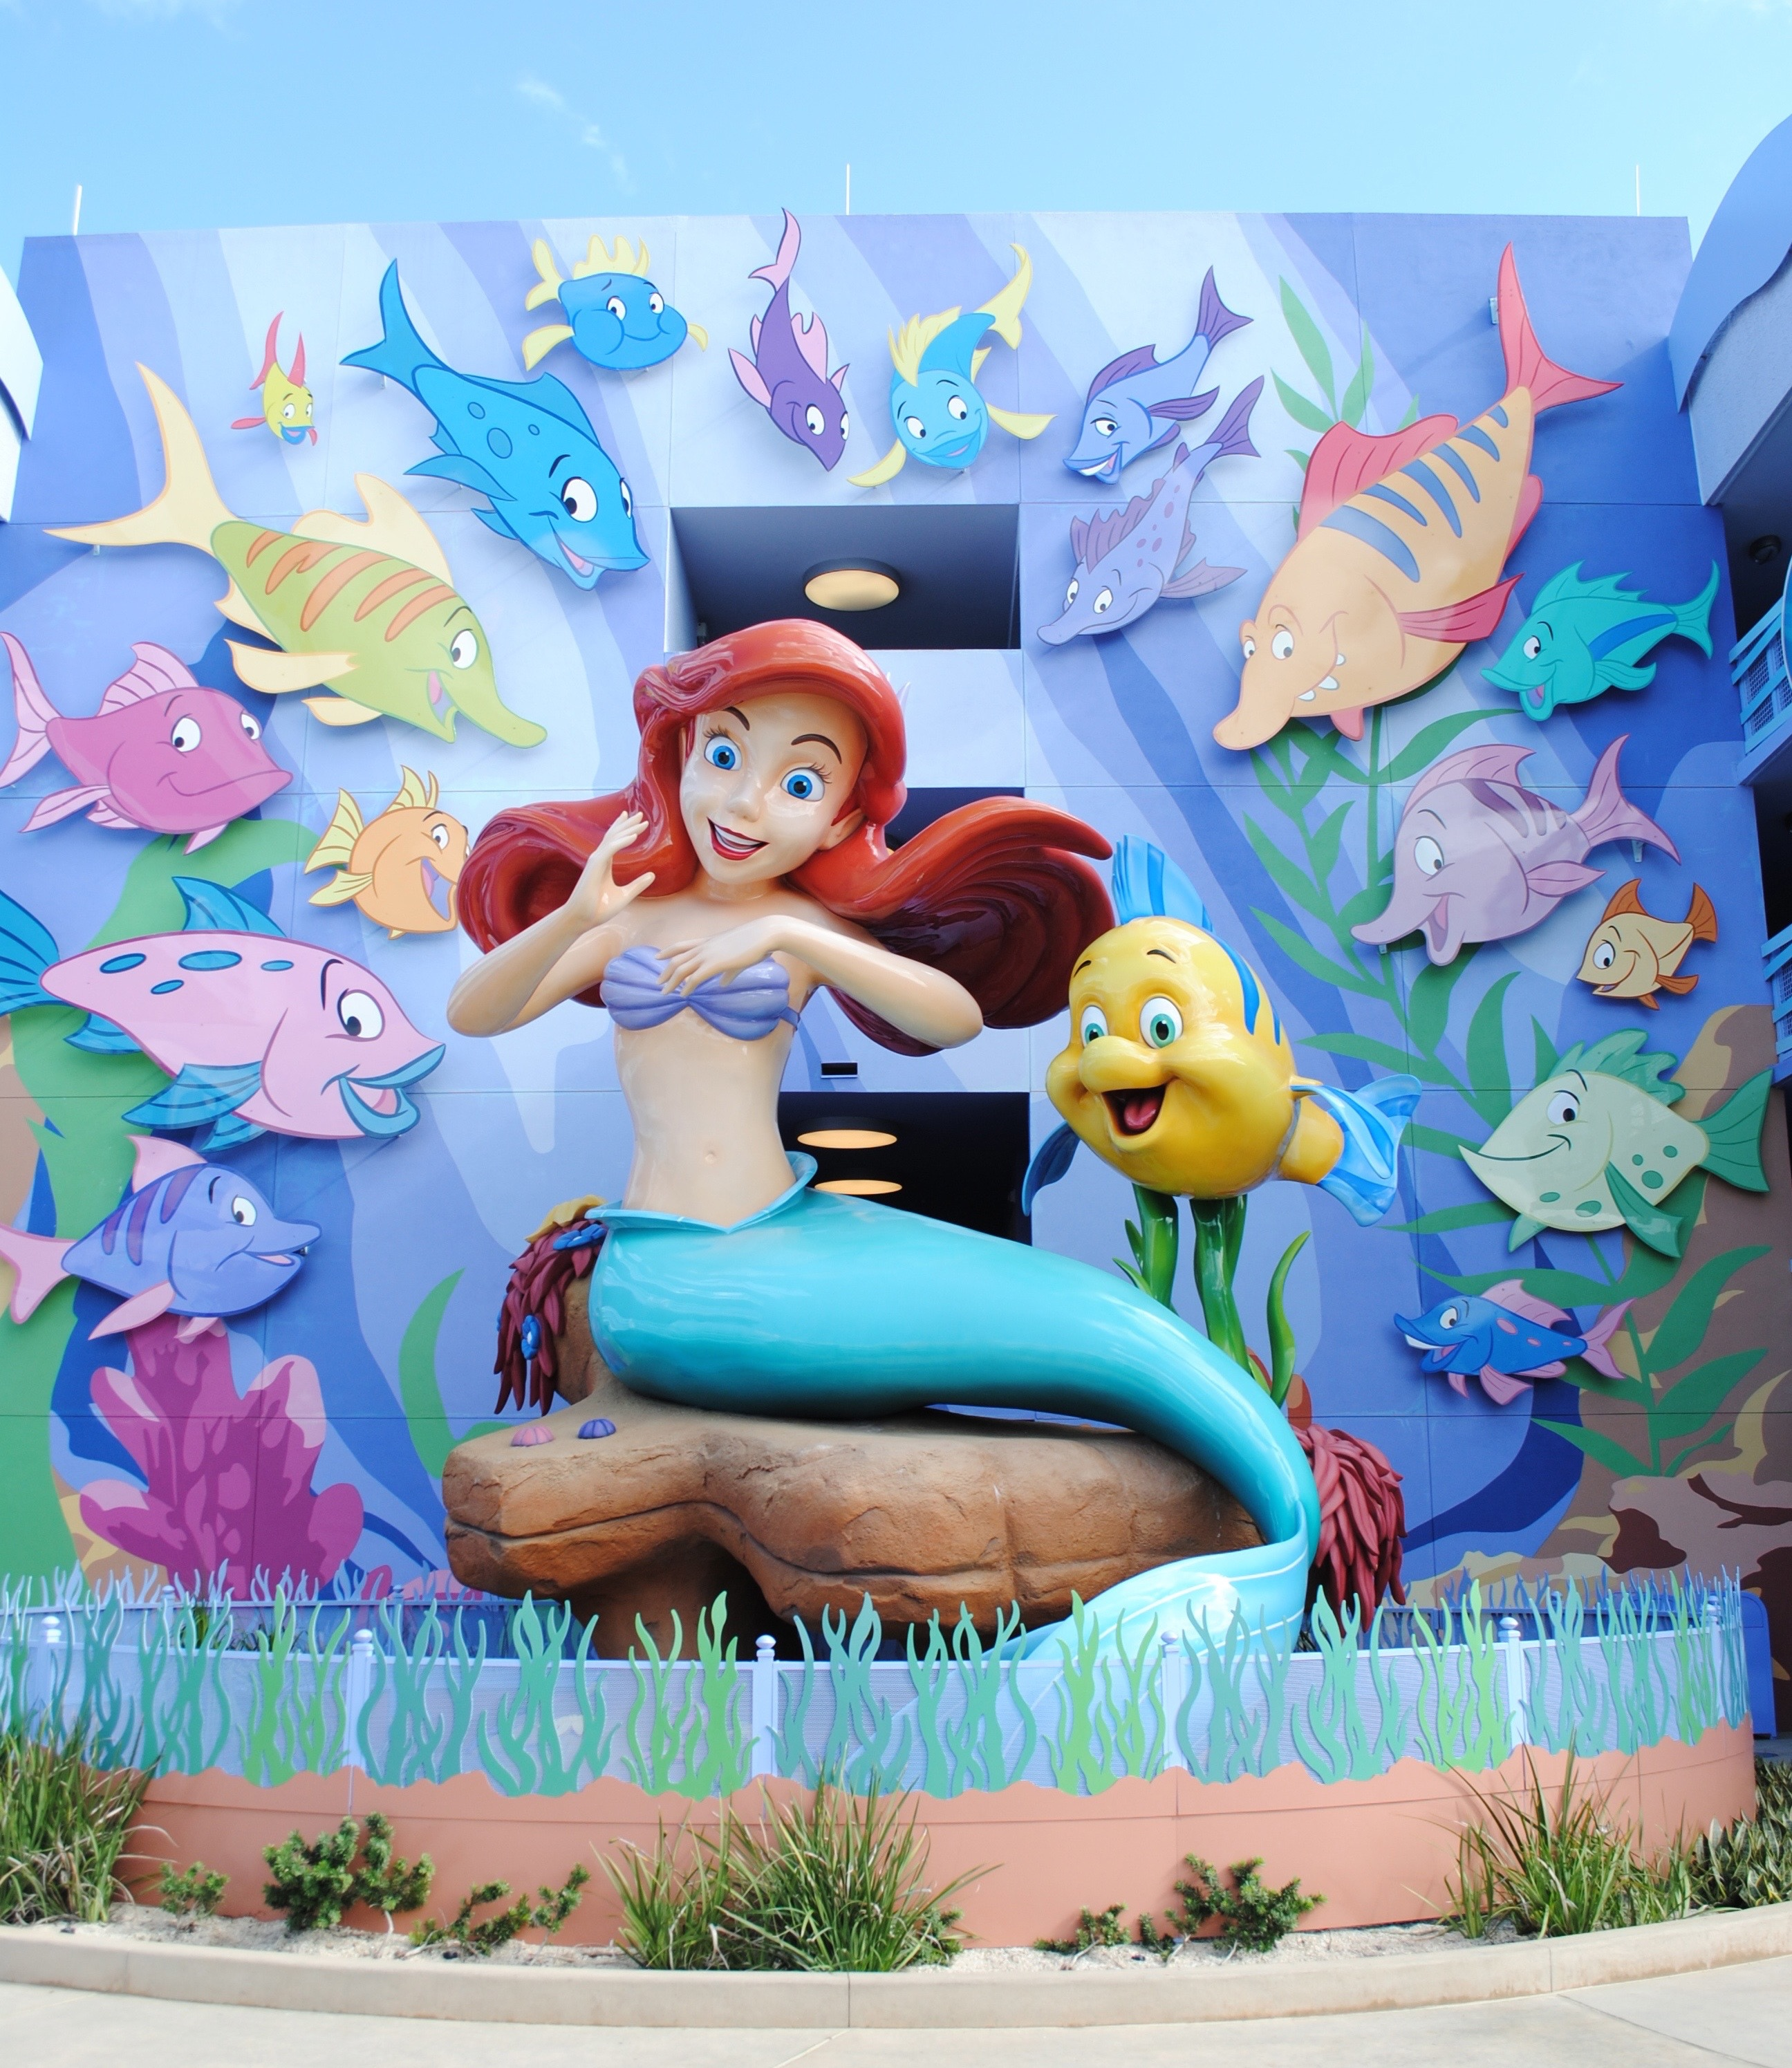 Walt Disney World Resort Art of Animation Review: The Little Mermaid Room